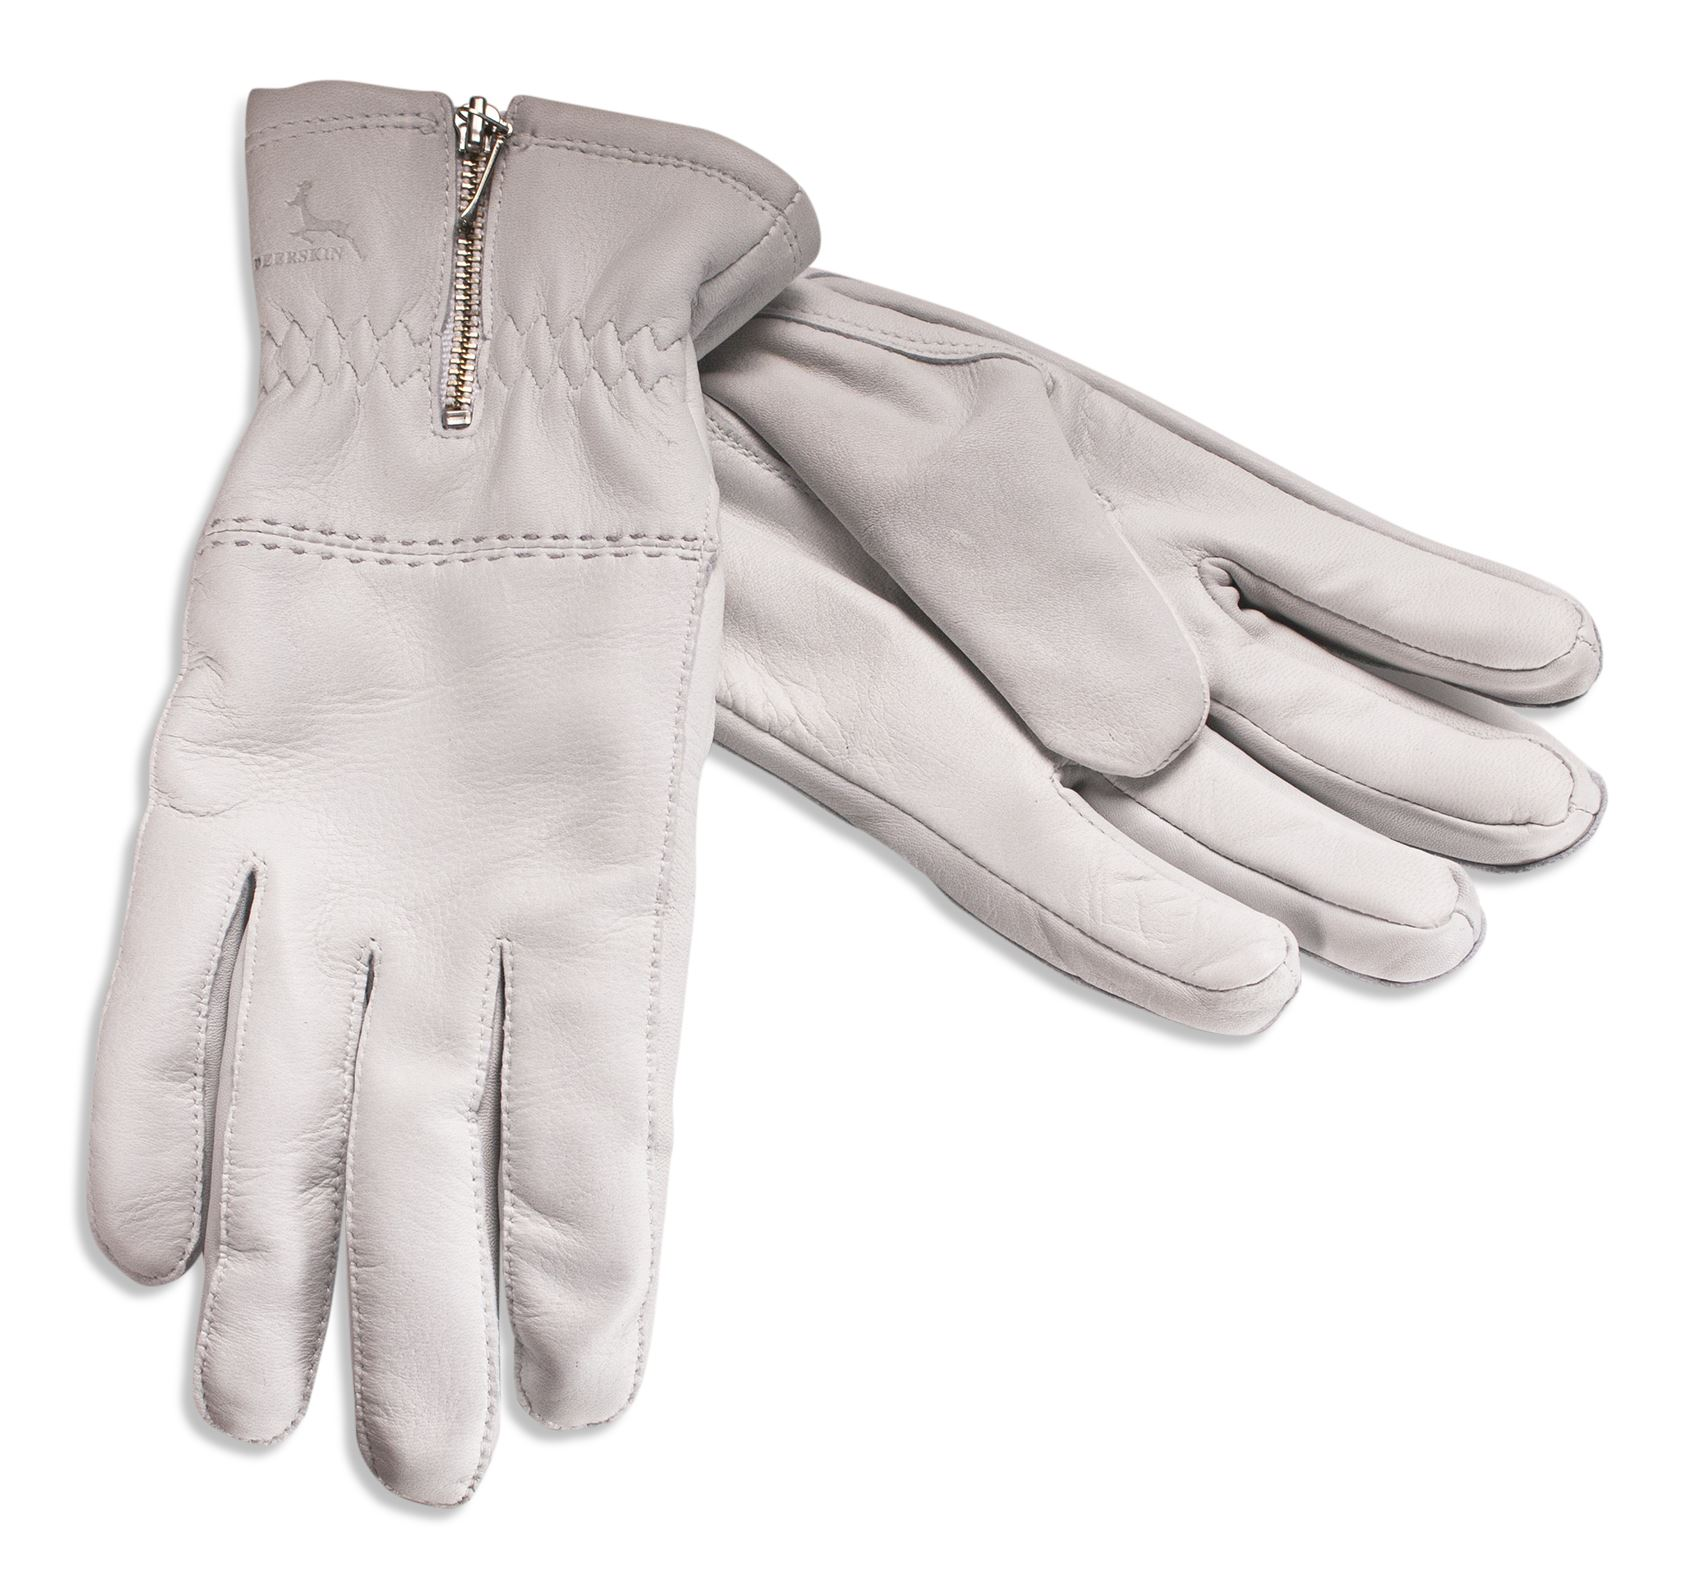 Womens lined leather gloves - Beautiful Deerskin Leather Gloves From Renowned Glove Makers Hestra With Swisswool Insulation Merino Wool Lining These Gloves Are Guaranteed To Keep Your